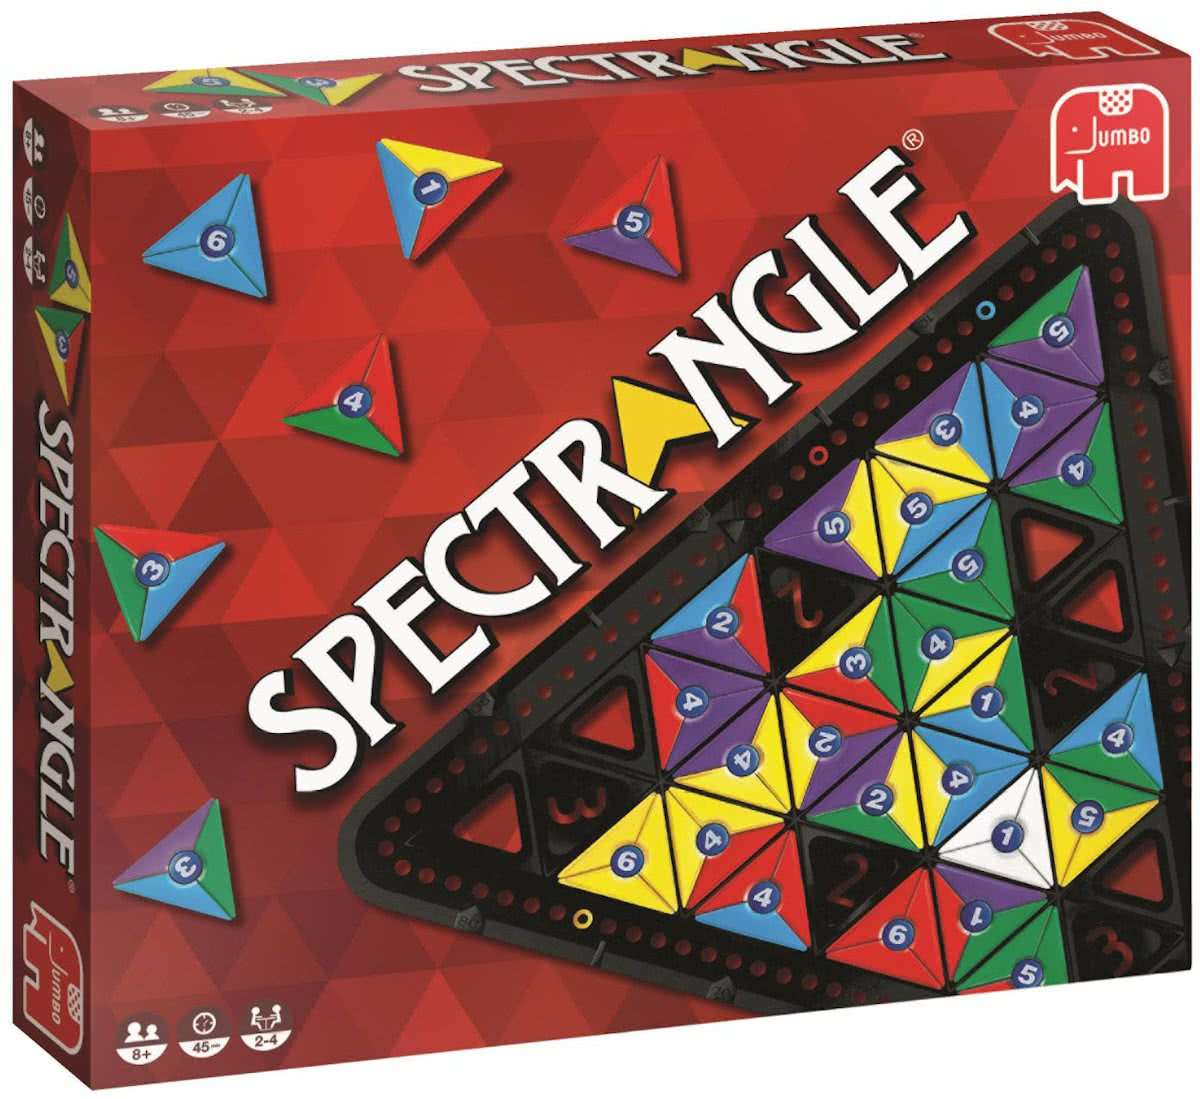 Jumbo Spectrangle bordspel